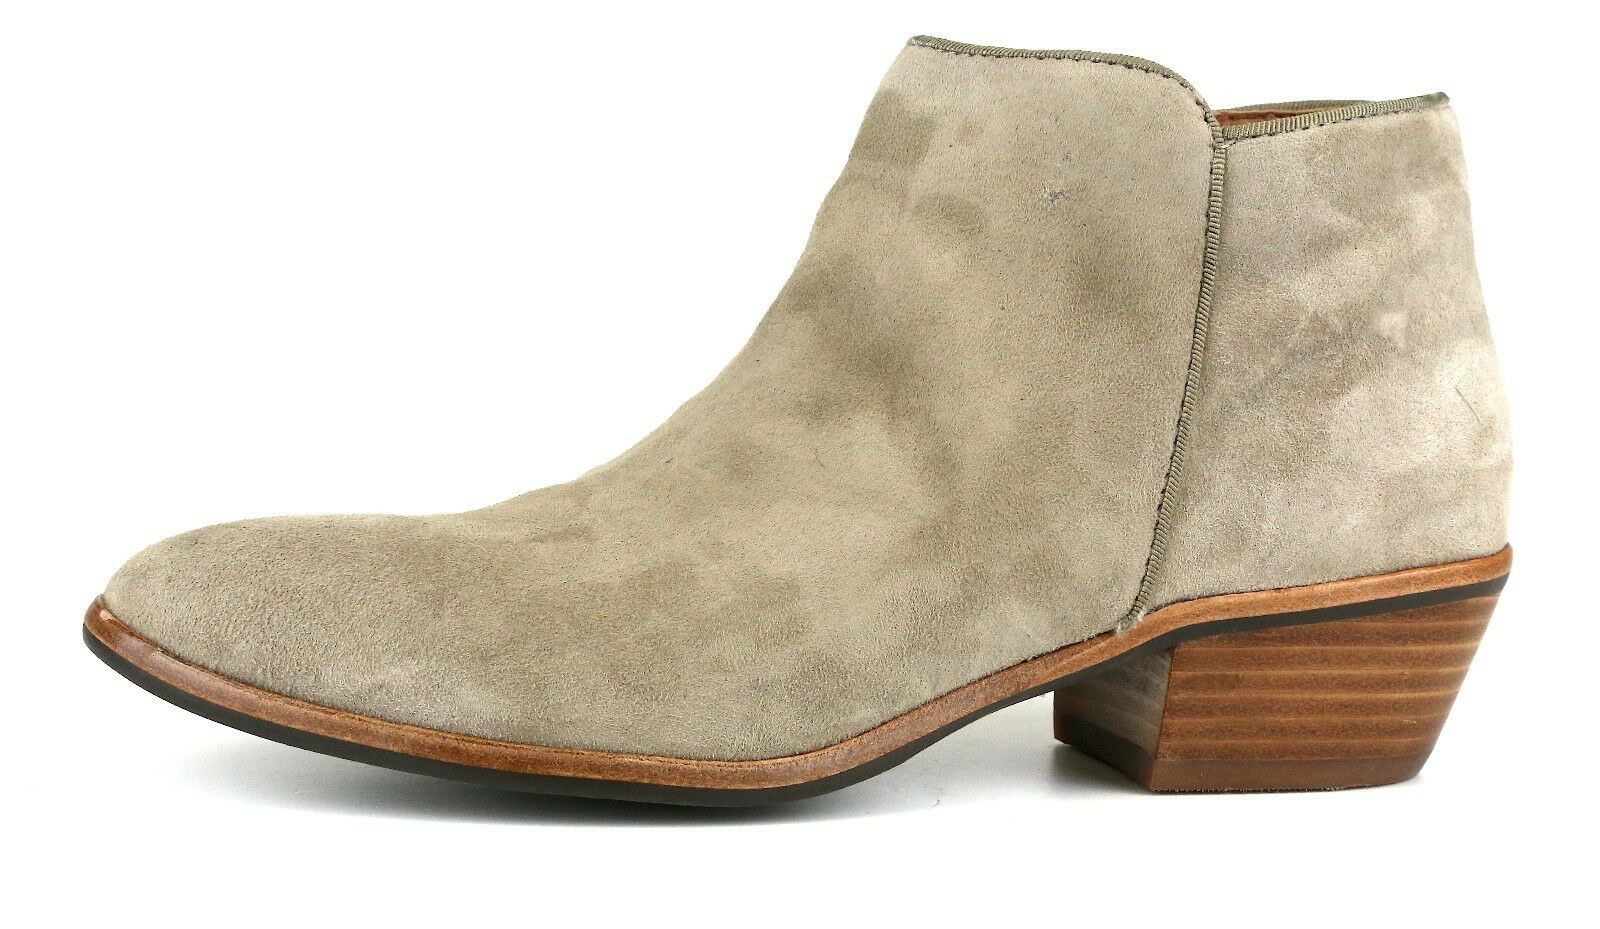 Sam Edelman Petty Chelsea Suede Boot Grey Women Sz 6 M 5465